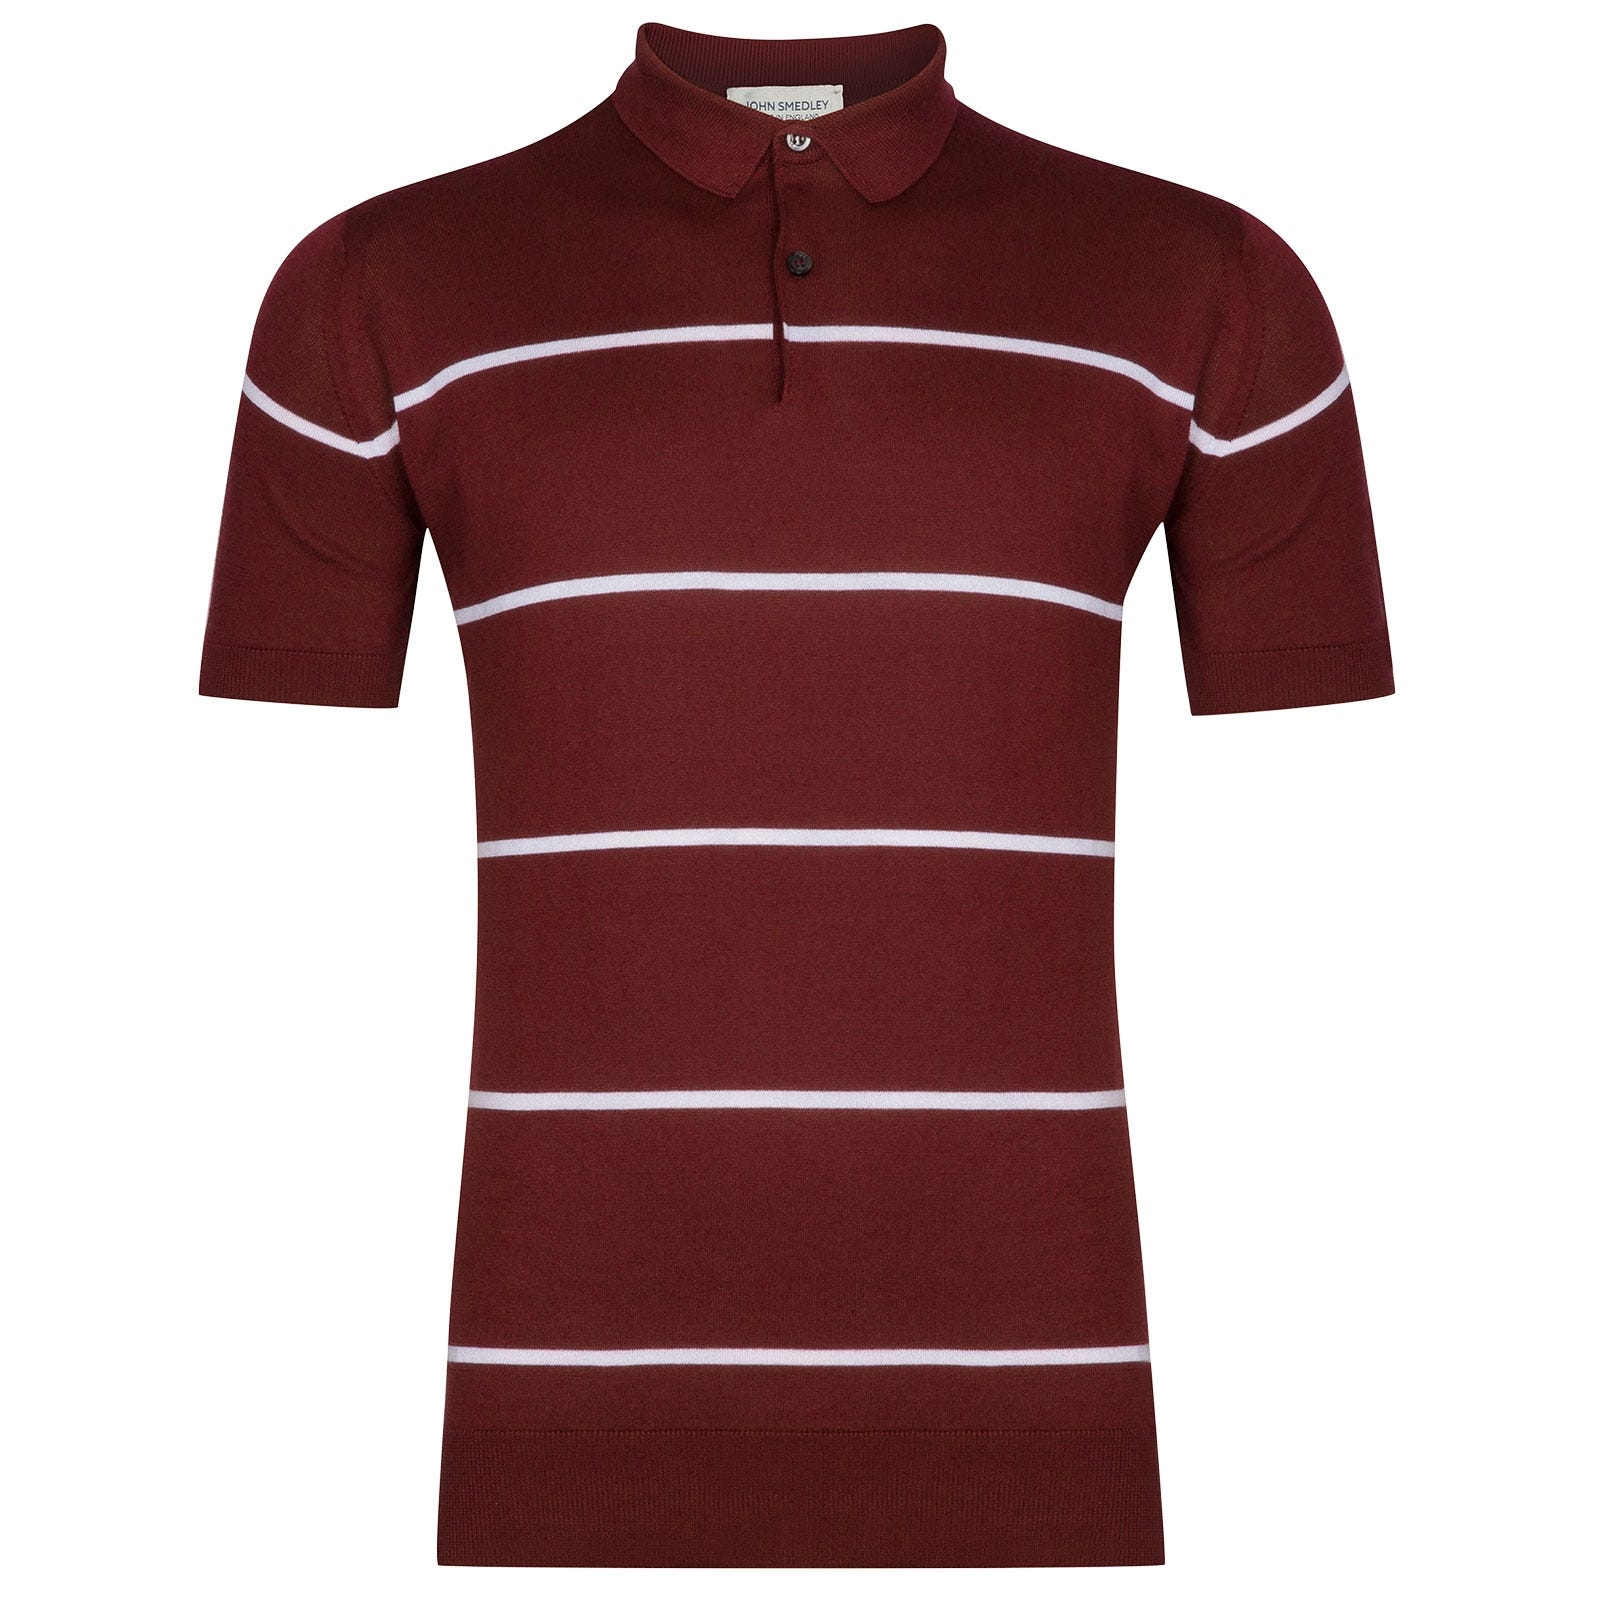 John Smedley Hembury Sea Island Cotton Shirt in Burgundy Grain-XL